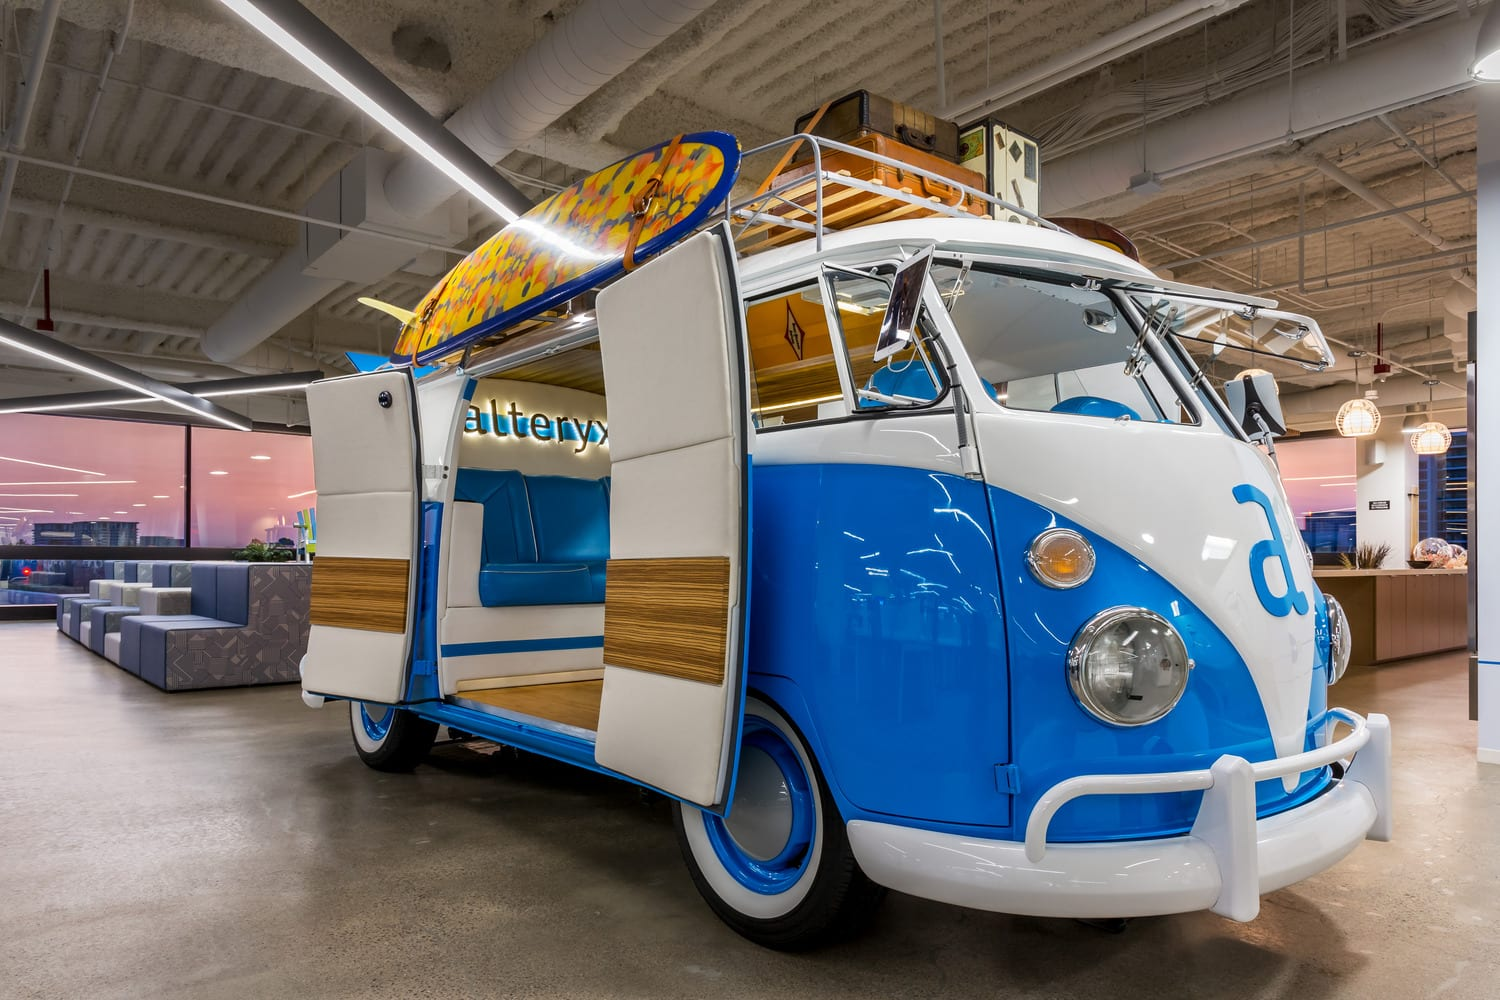 VW Bus at the Alteryx Headquarters